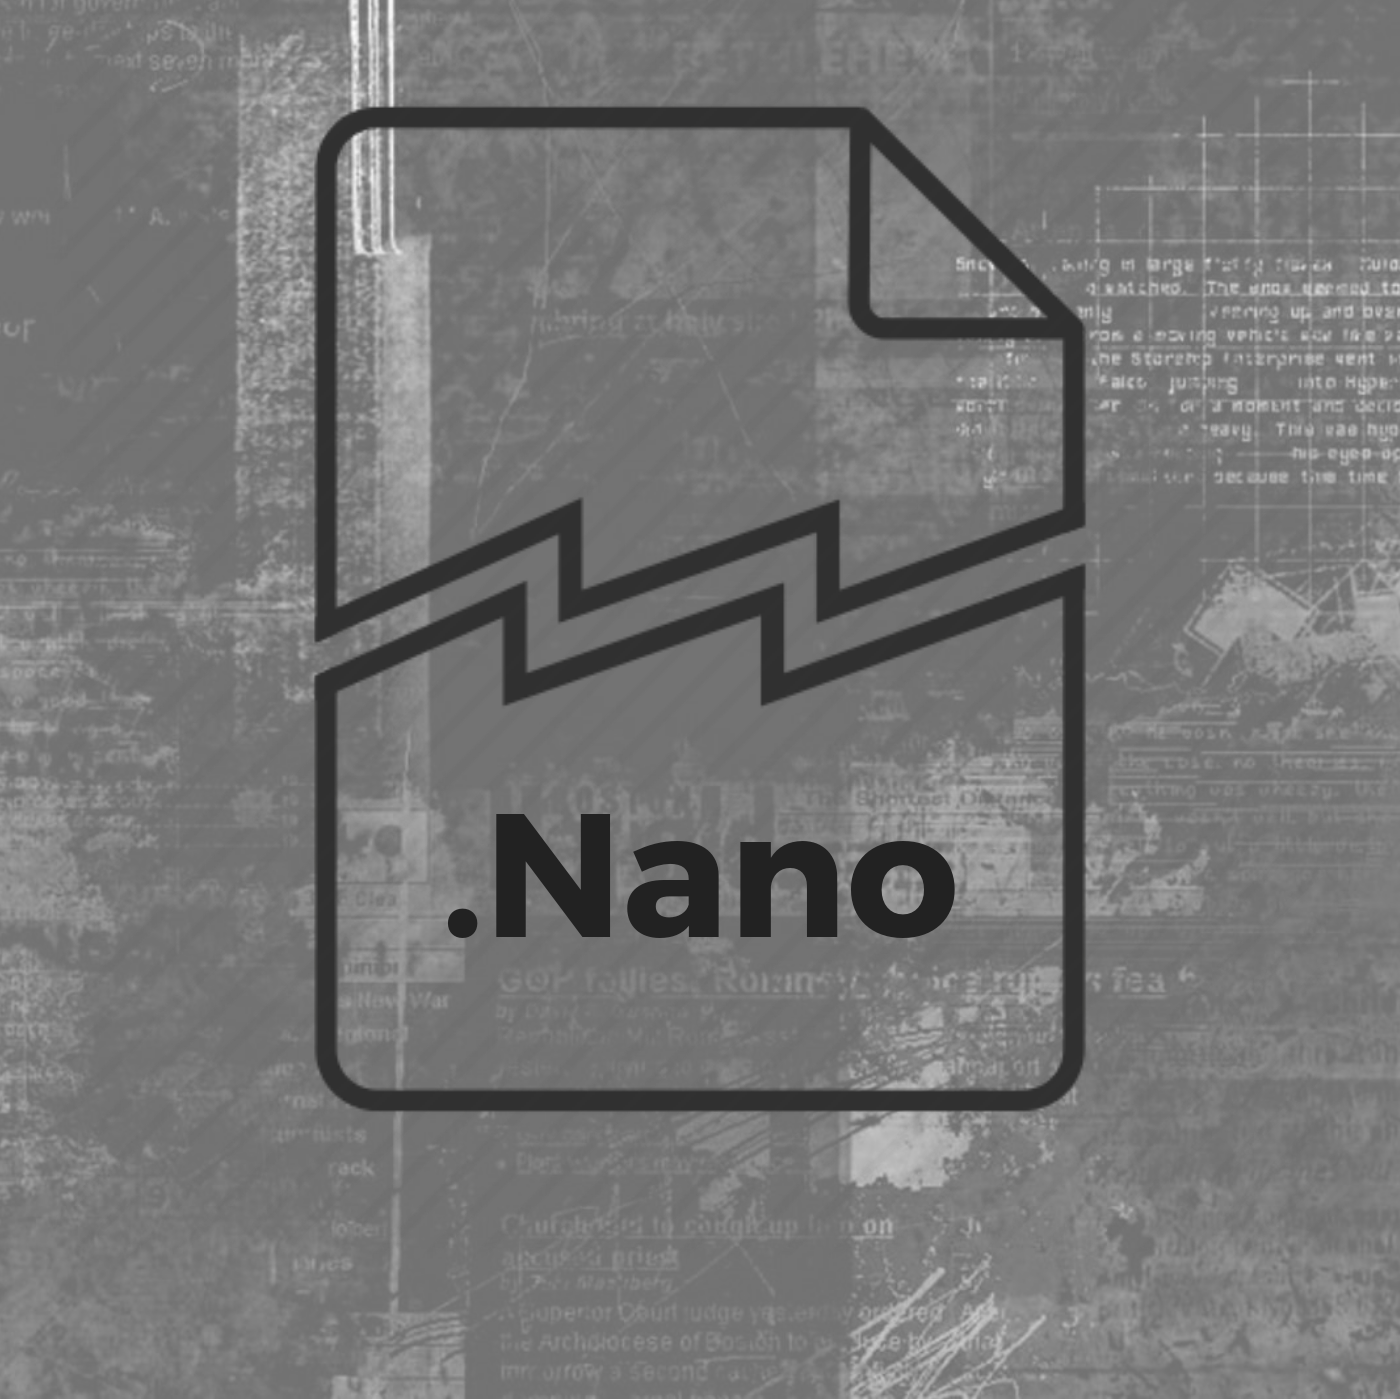 Viral Nano News Viralnanonews: How To Remove It And Restore Data